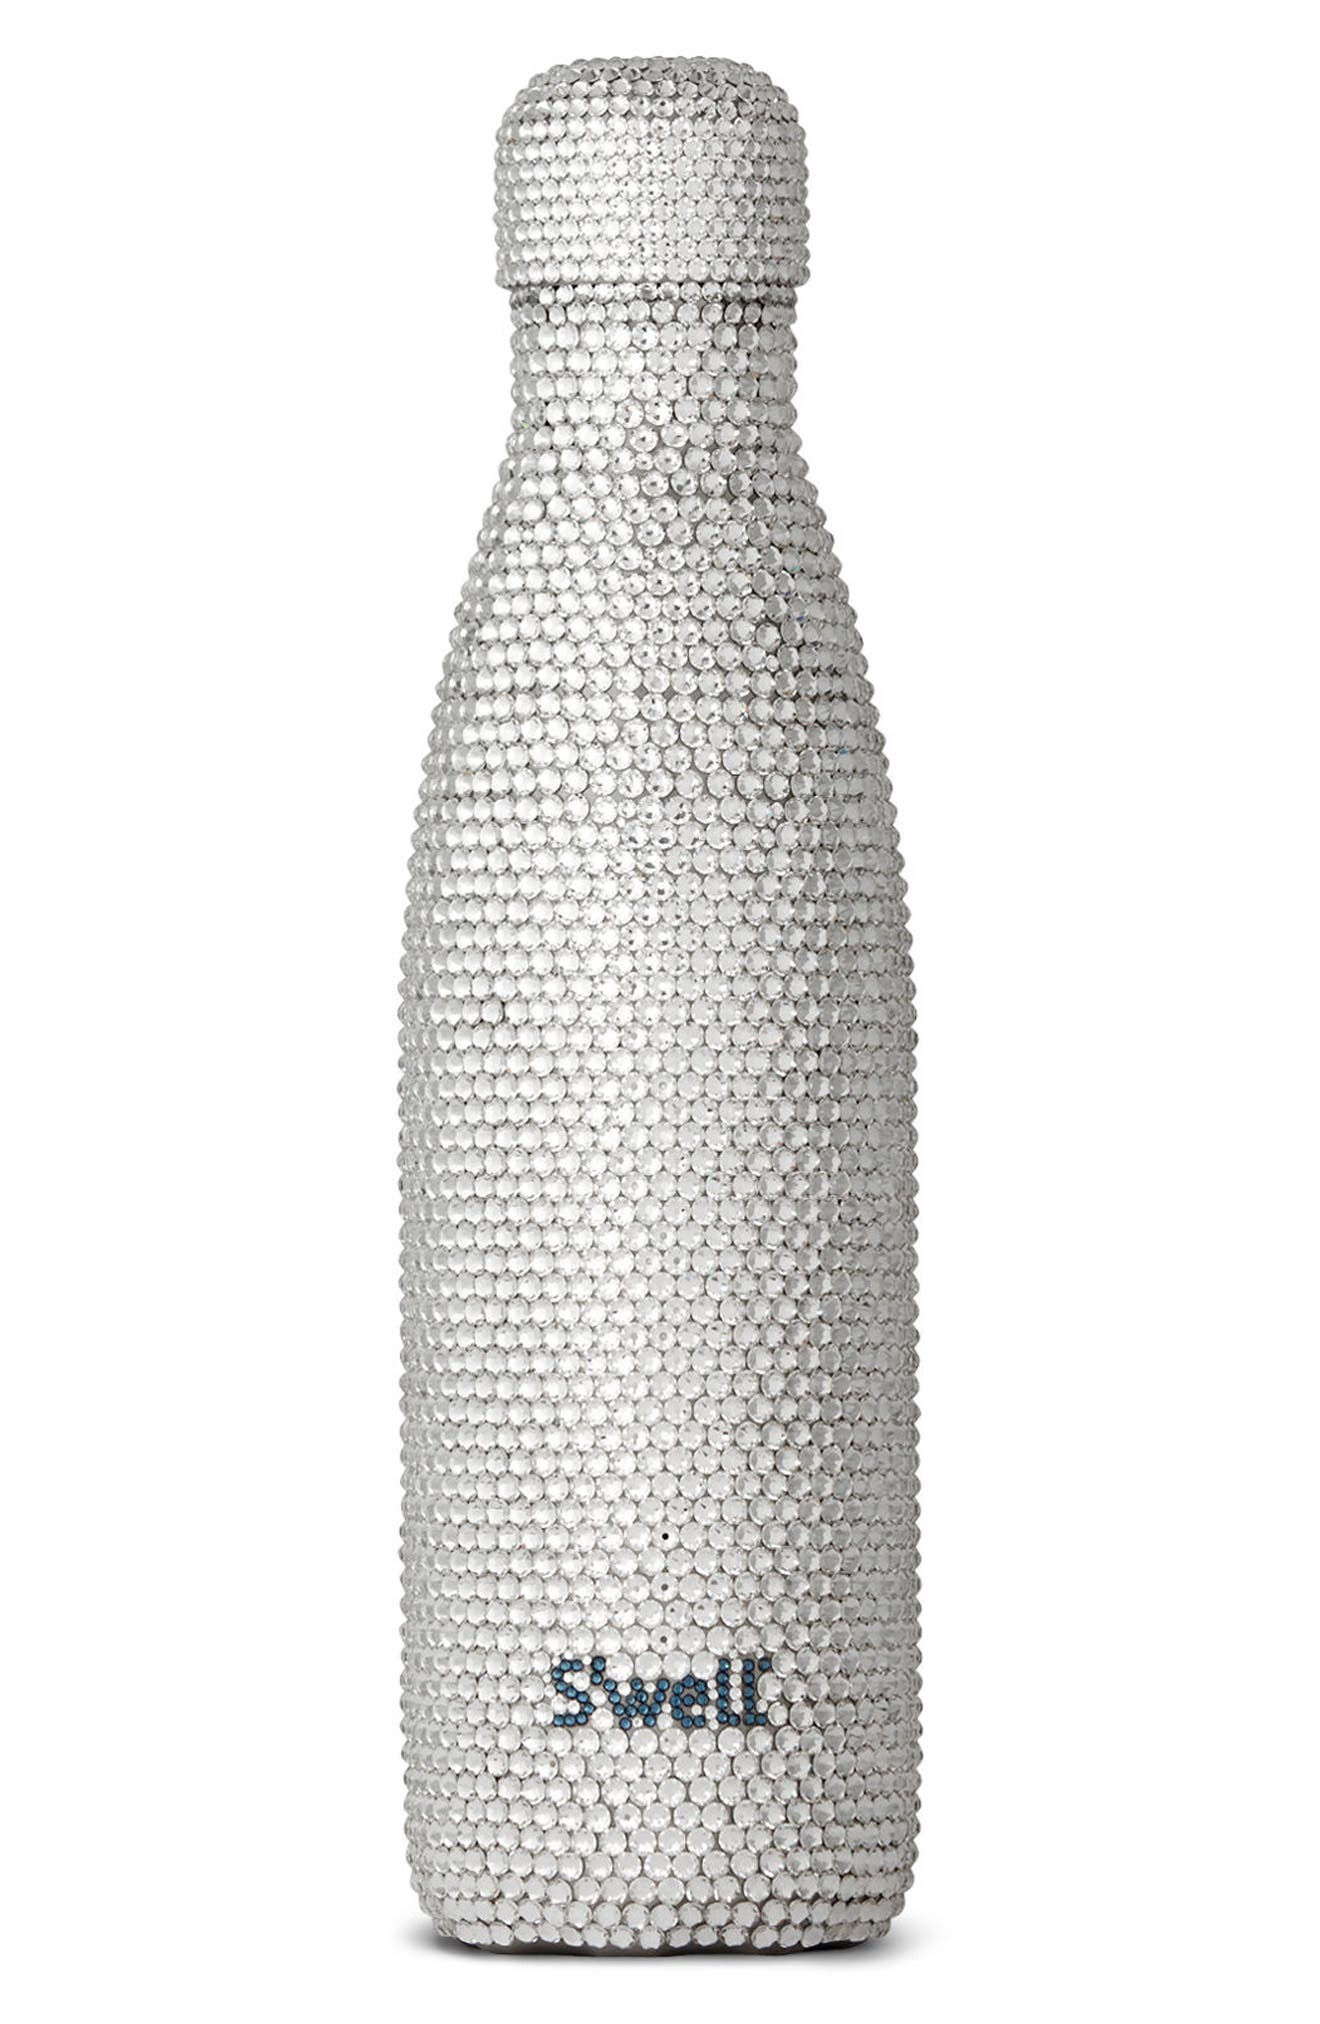 Alternate Image 1 Selected - S'well Alina Swarovski Crystal Insulated Stainless Steel Water Bottle (Limited Edition)